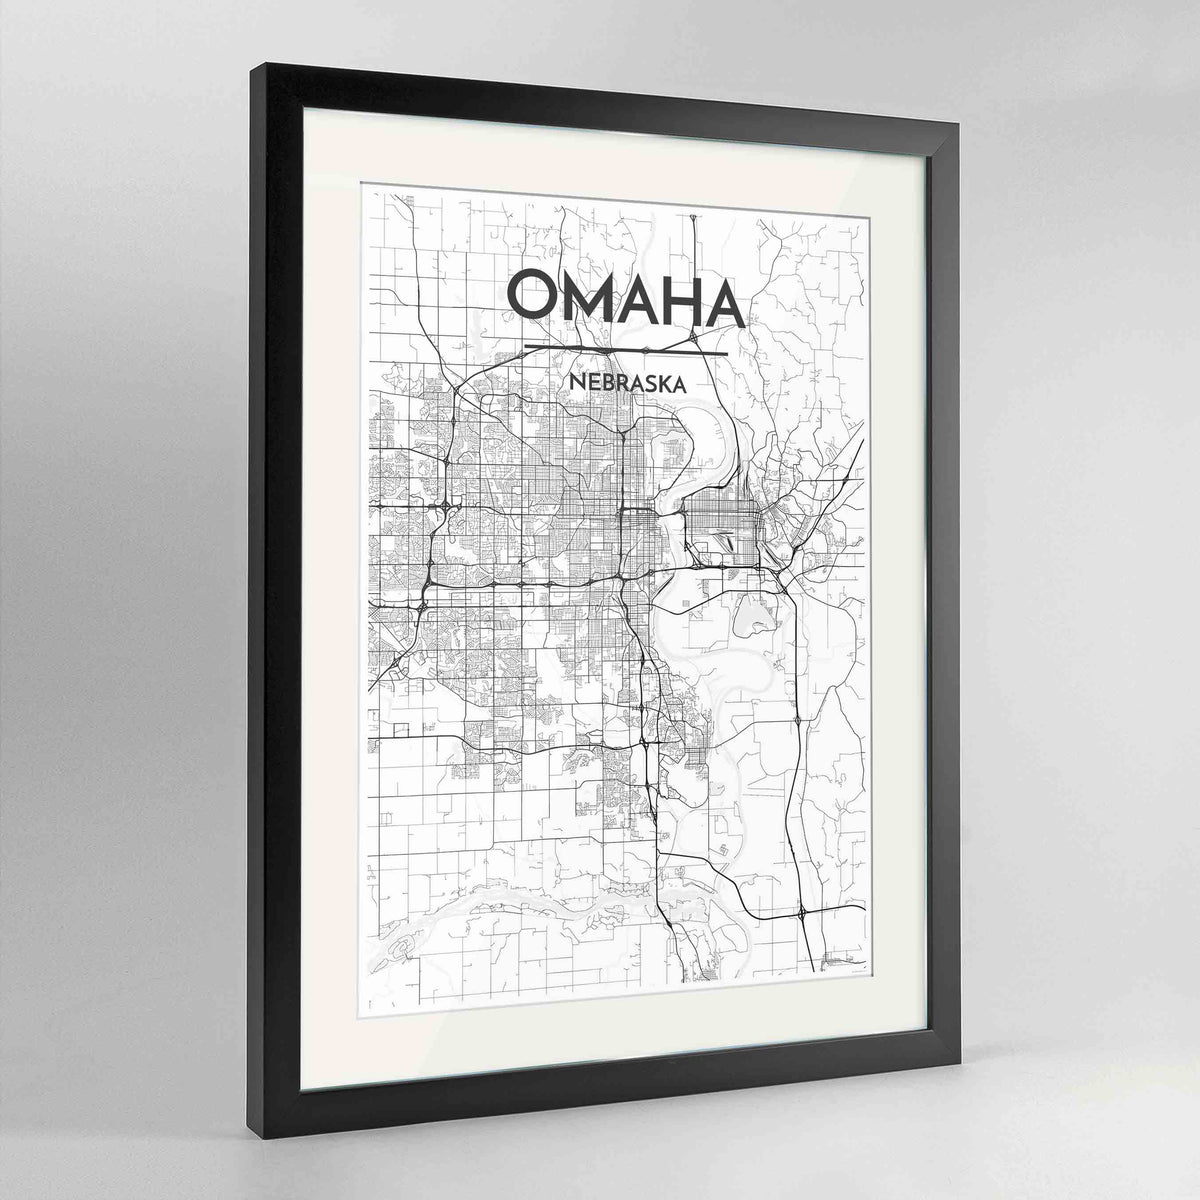 "Framed Omaha Map Art Print 24x36"" Contemporary Black frame Point Two Design Group"